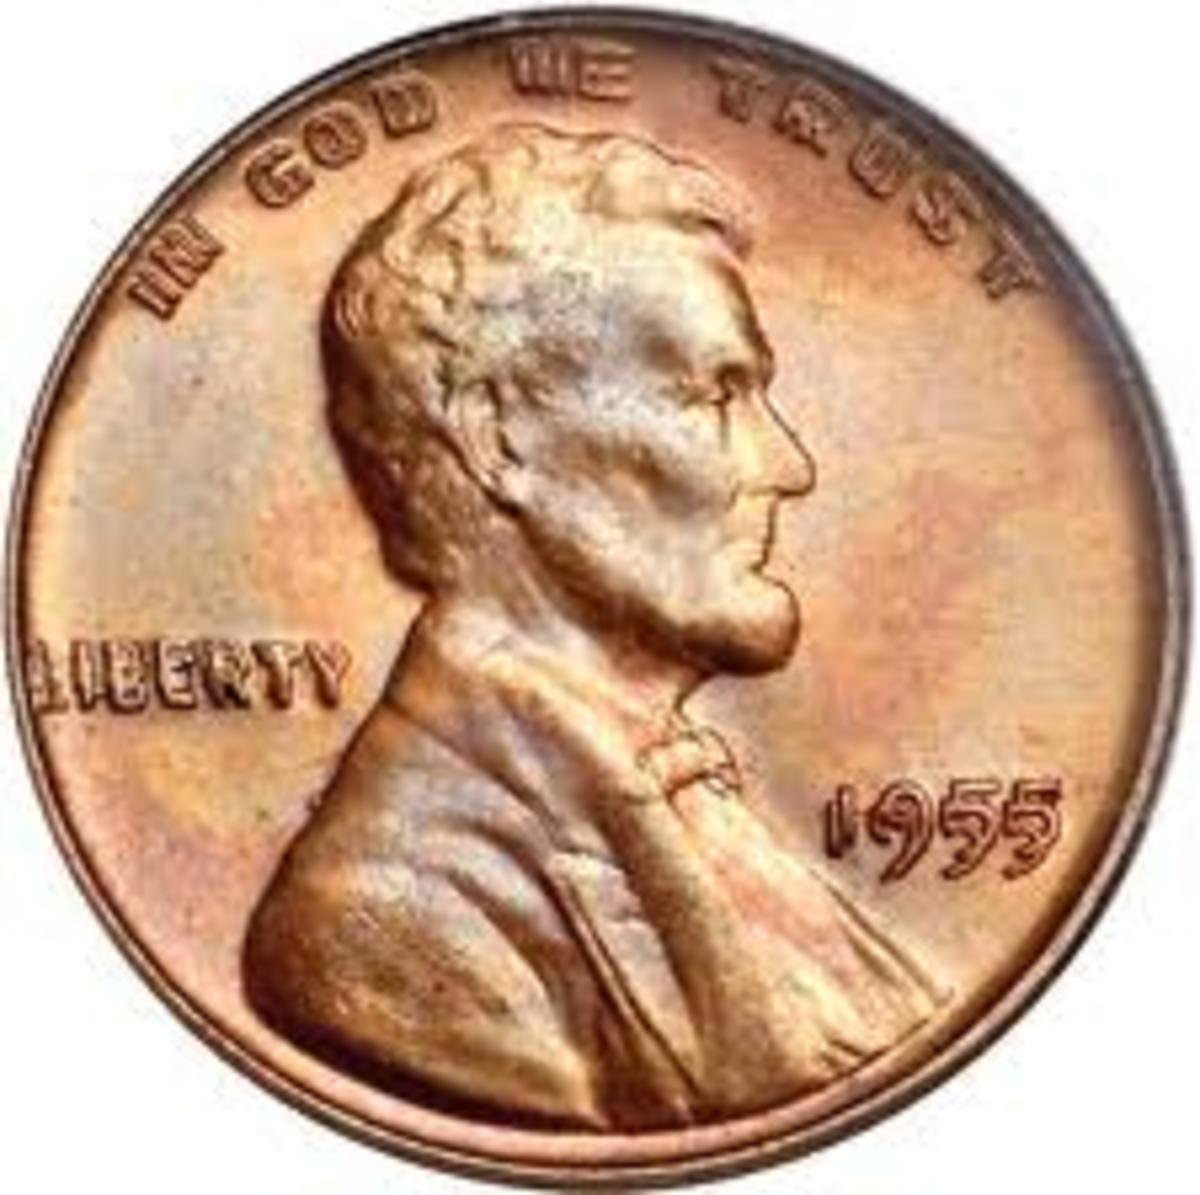 This Is A Rare Doubled Die Penny From 1995 You Can Clearly See The Doubling